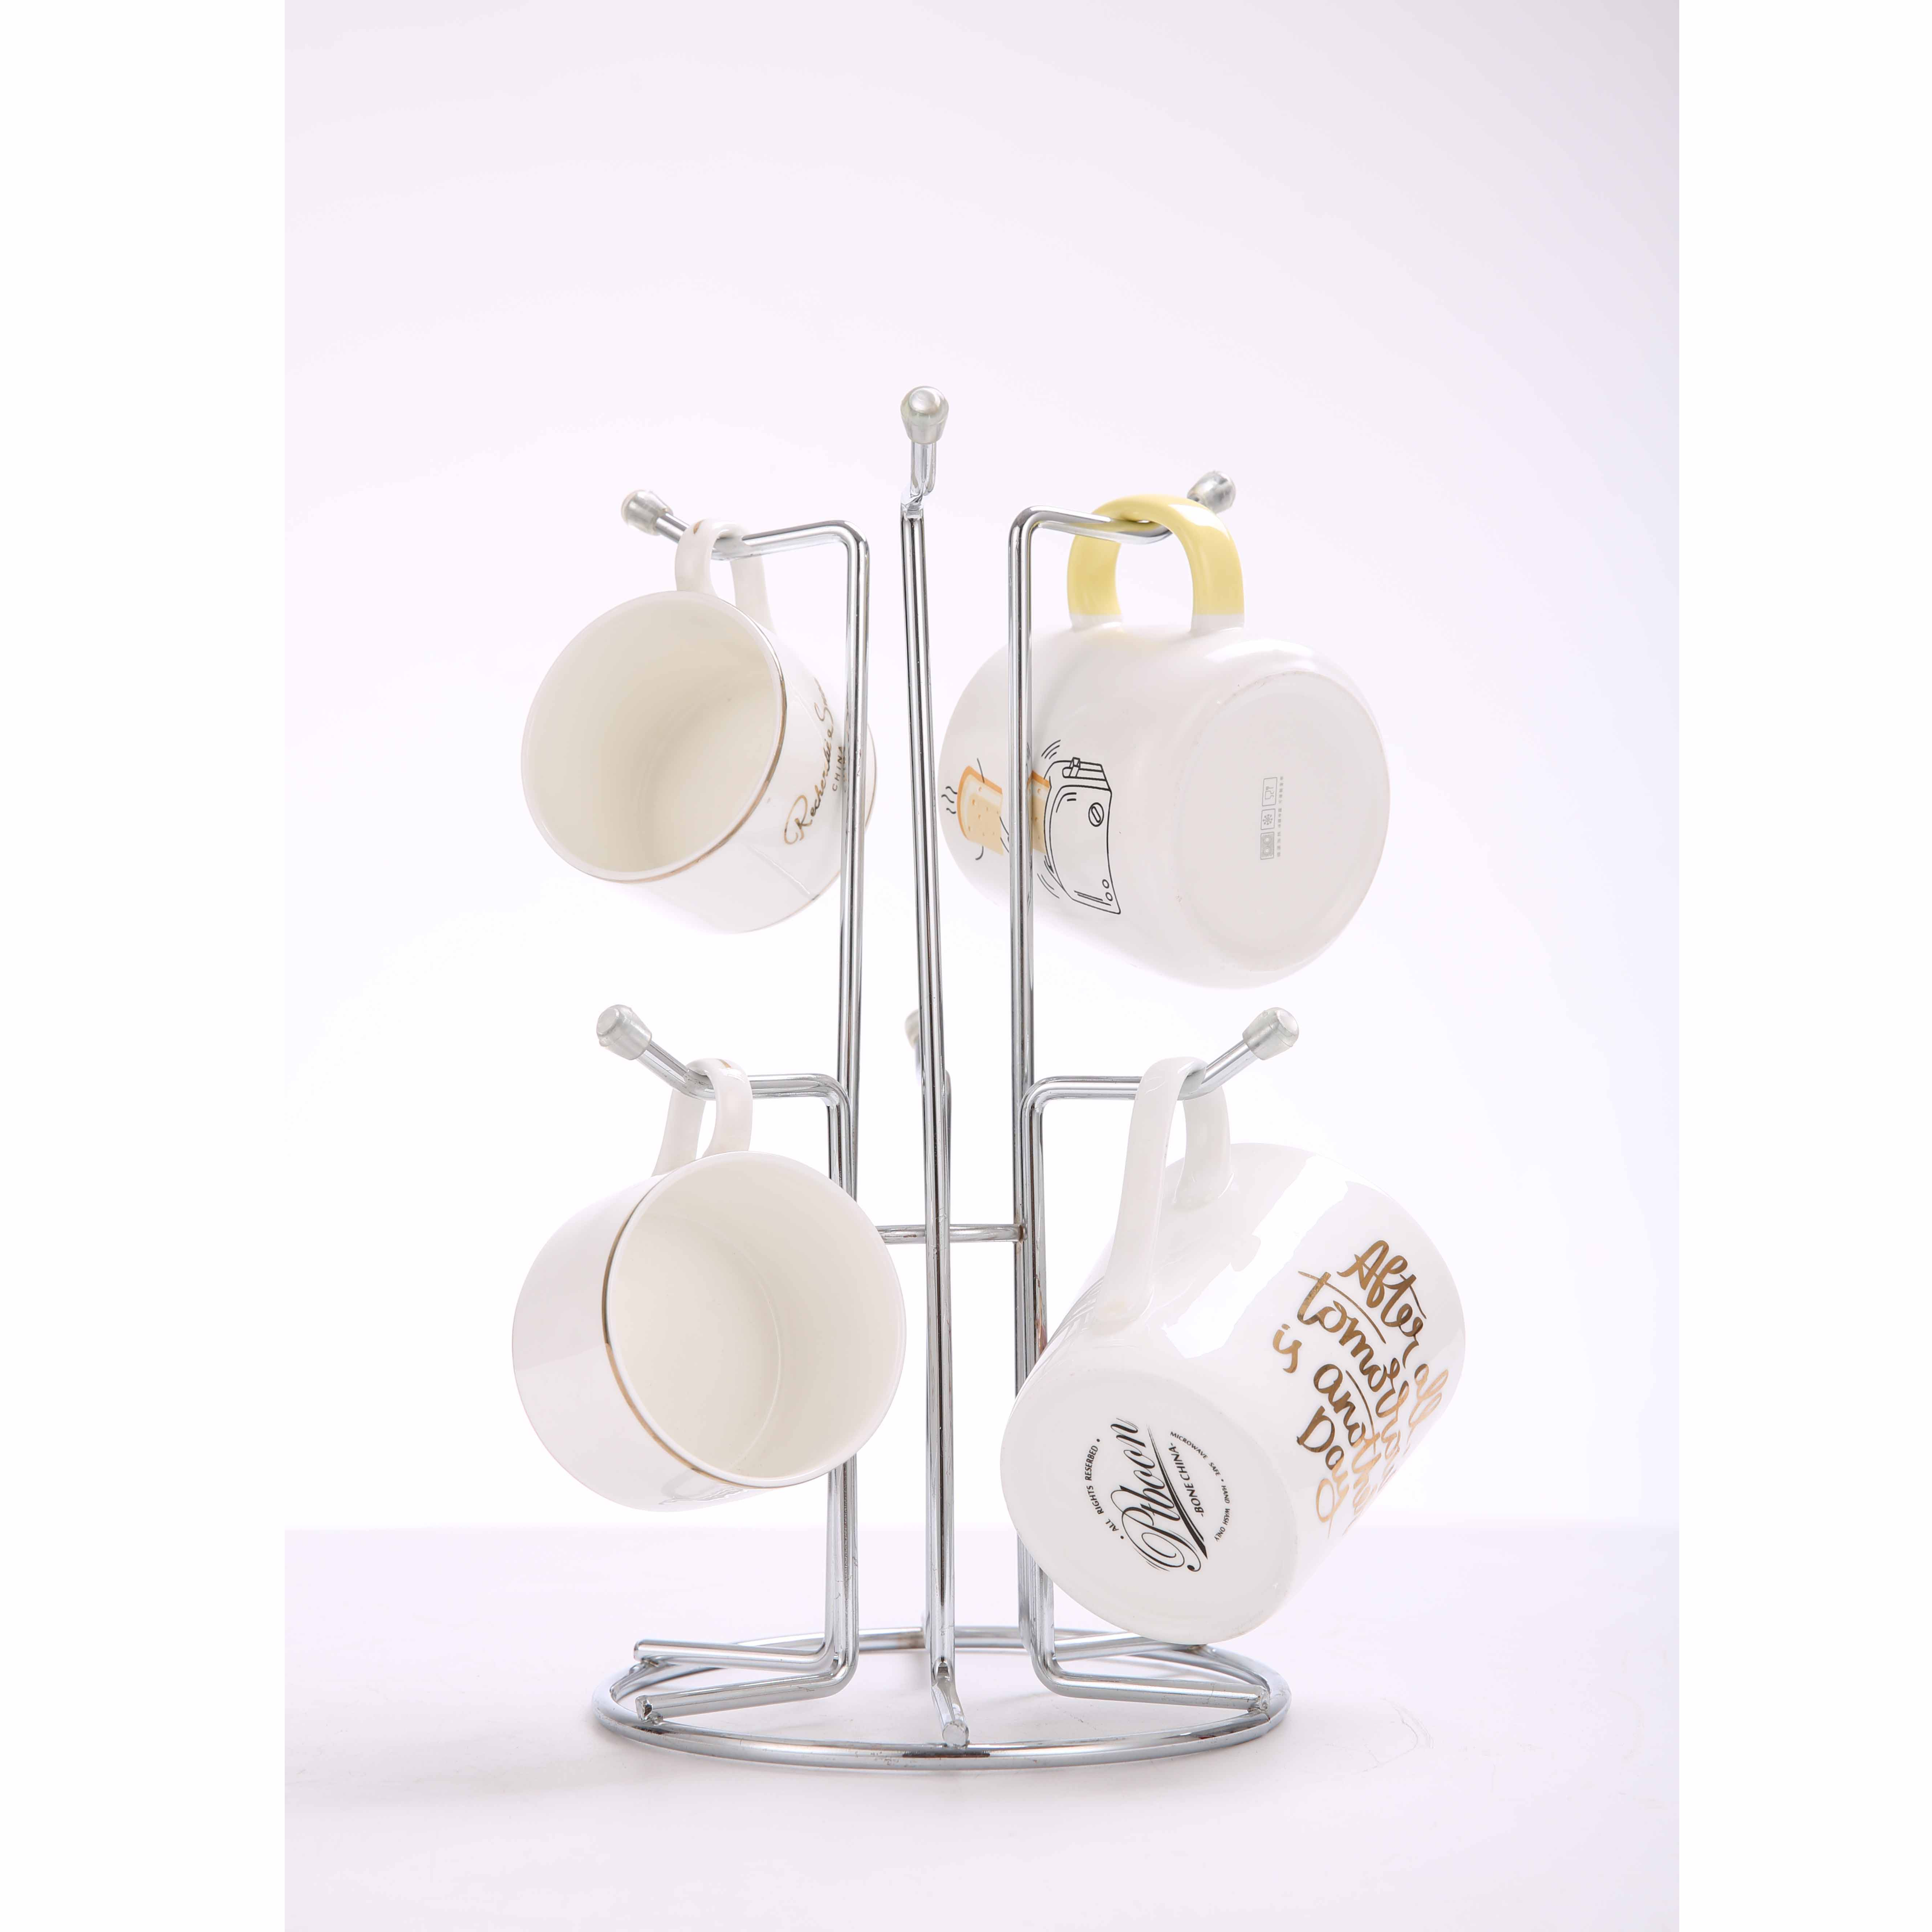 6 hook cup storage drying holder rack mugs hang holder rack